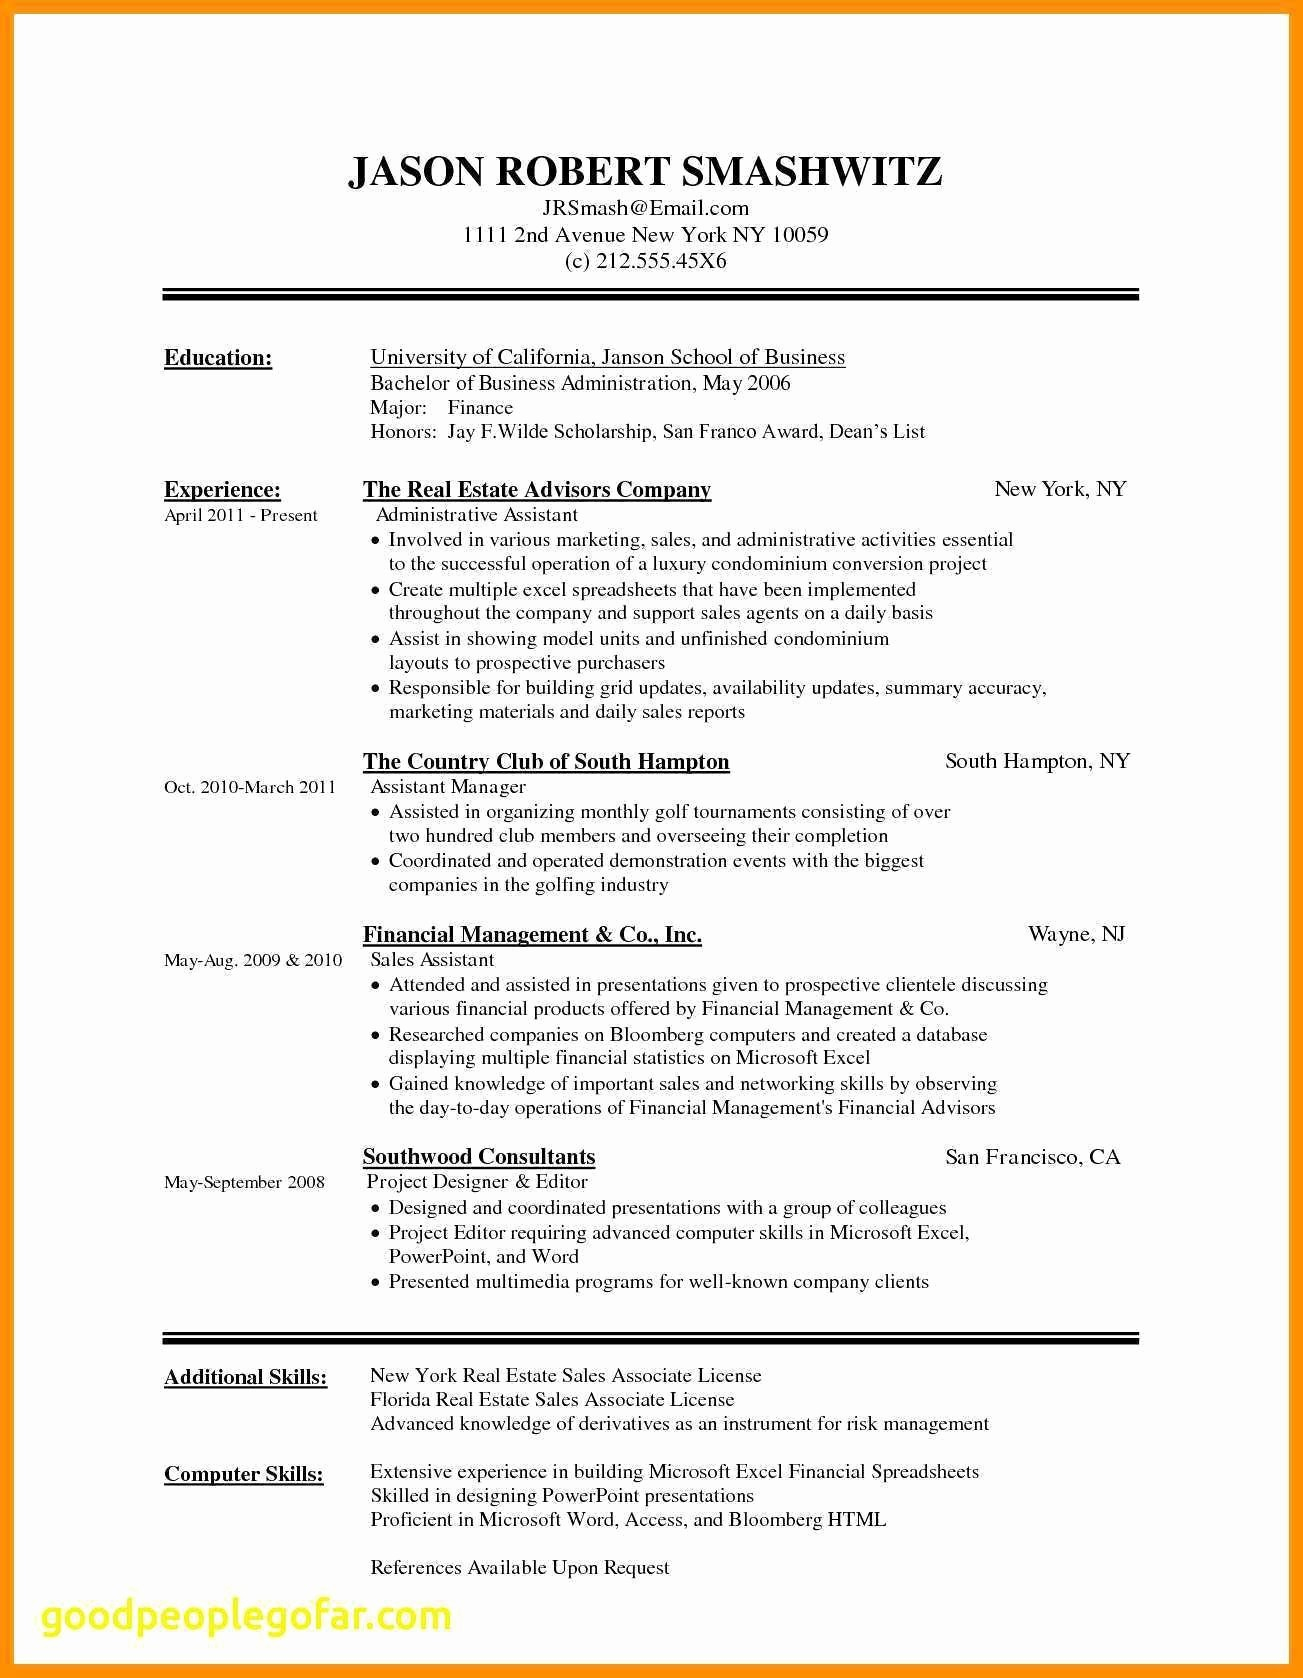 Word Resume Template - 16 Fresh Free Resume Templates Microsoft